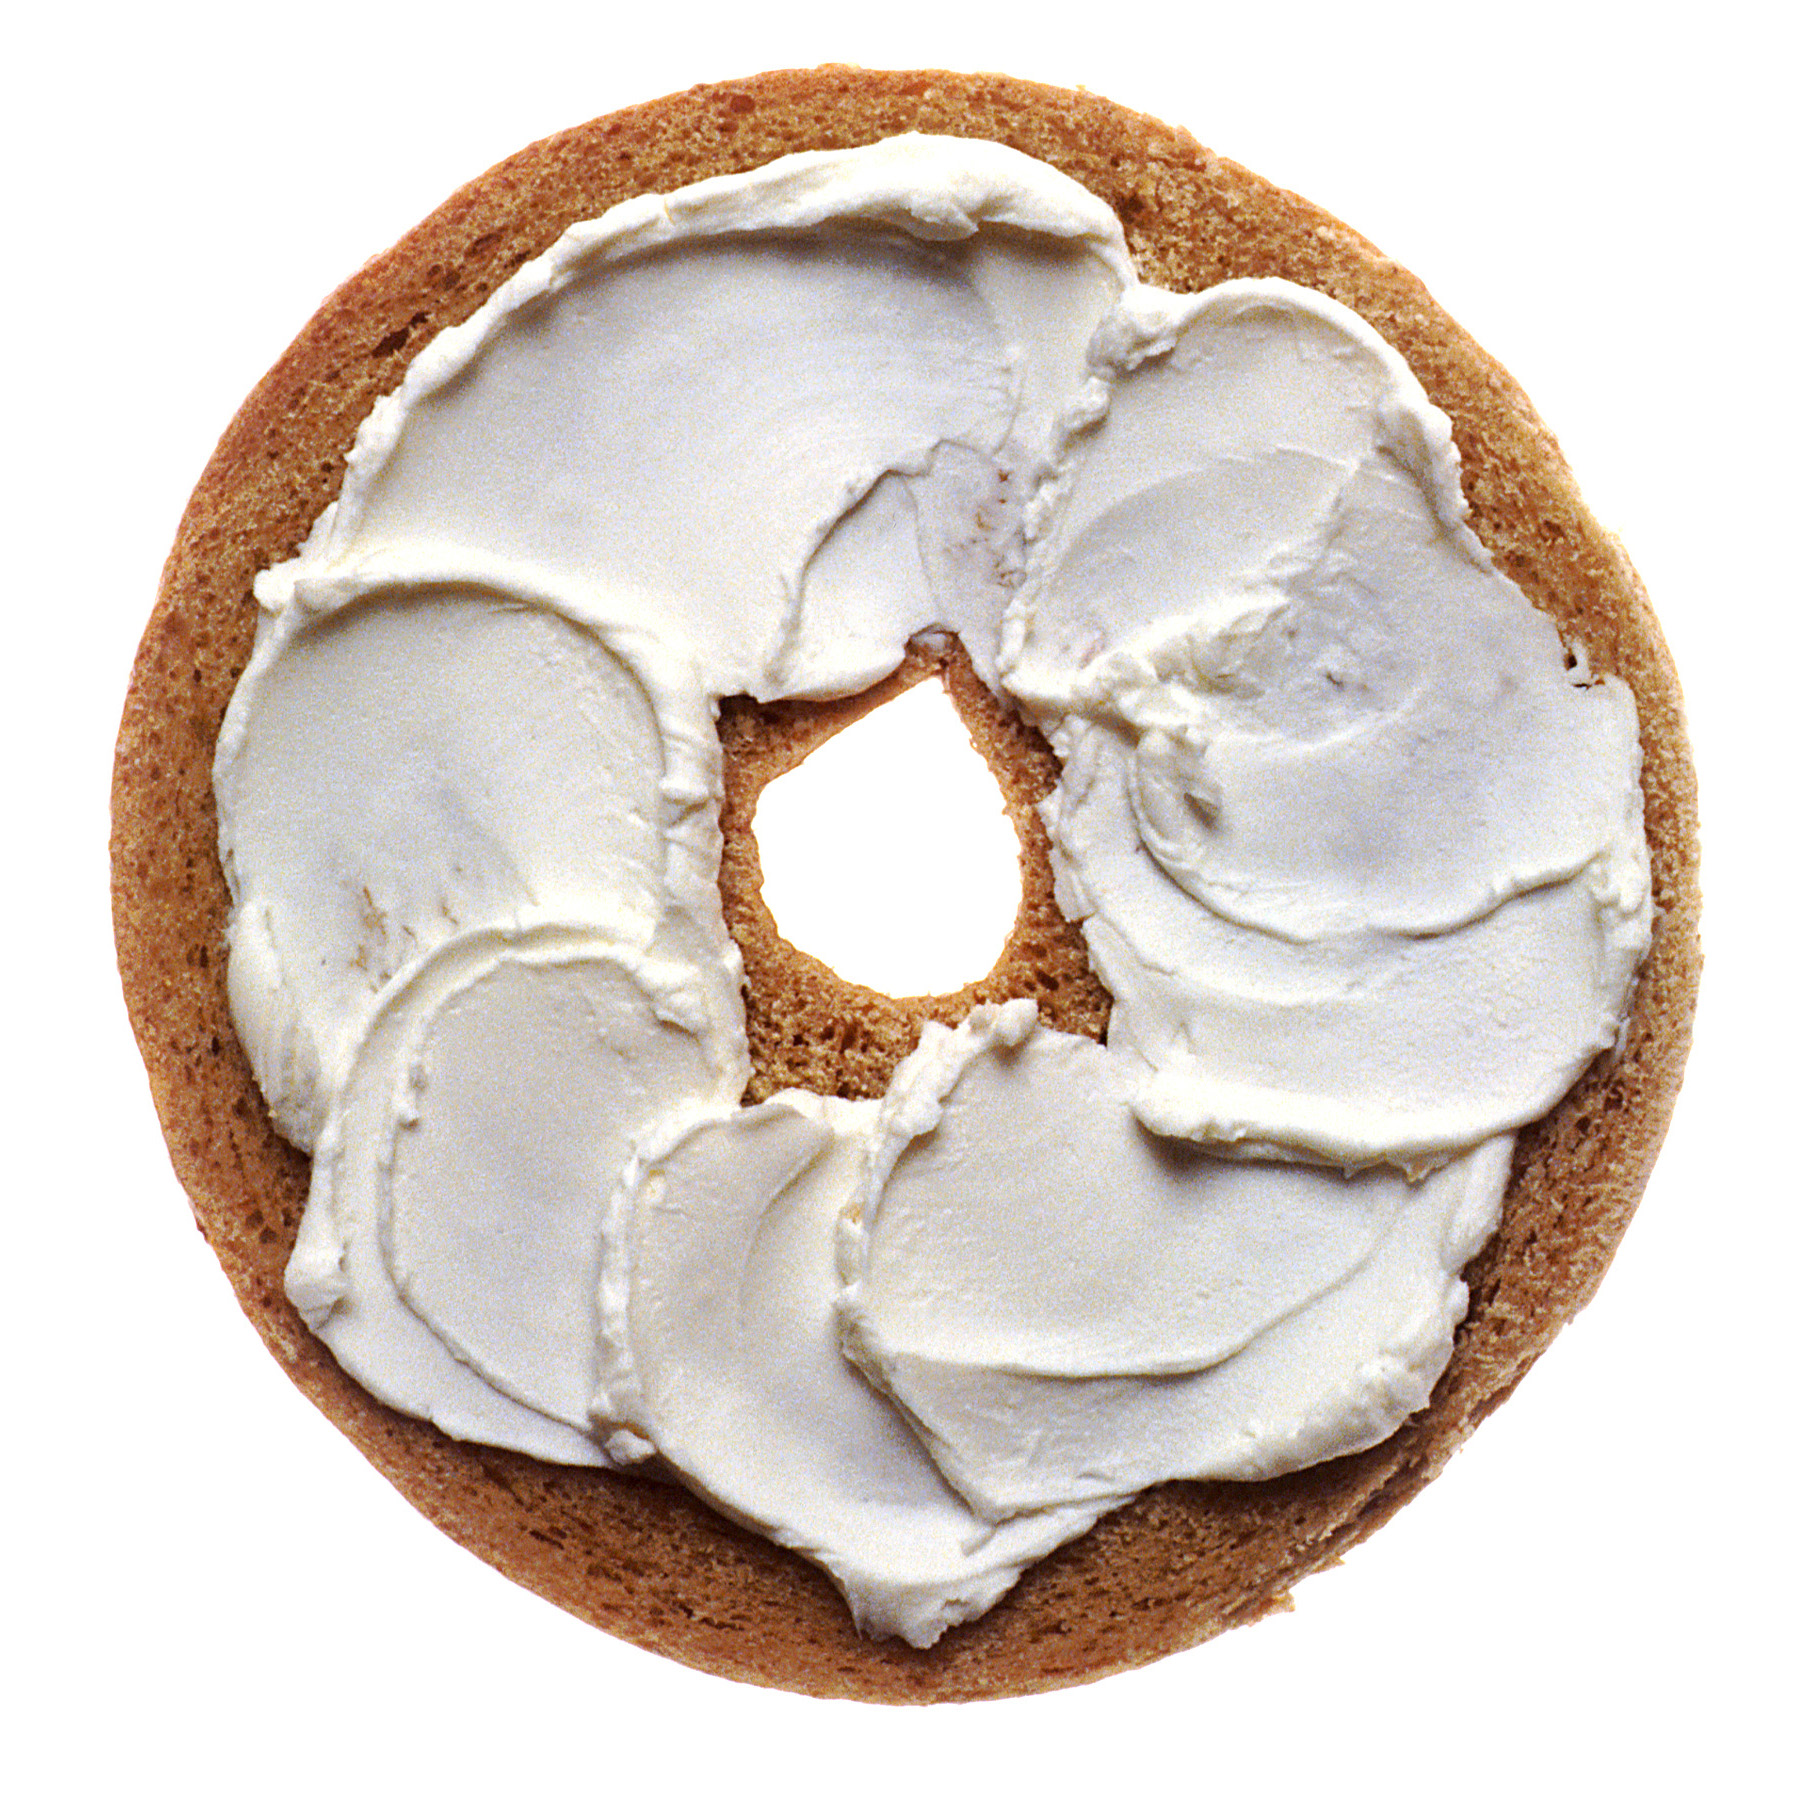 Thumbnail image for bagelcreamcheese.jpg